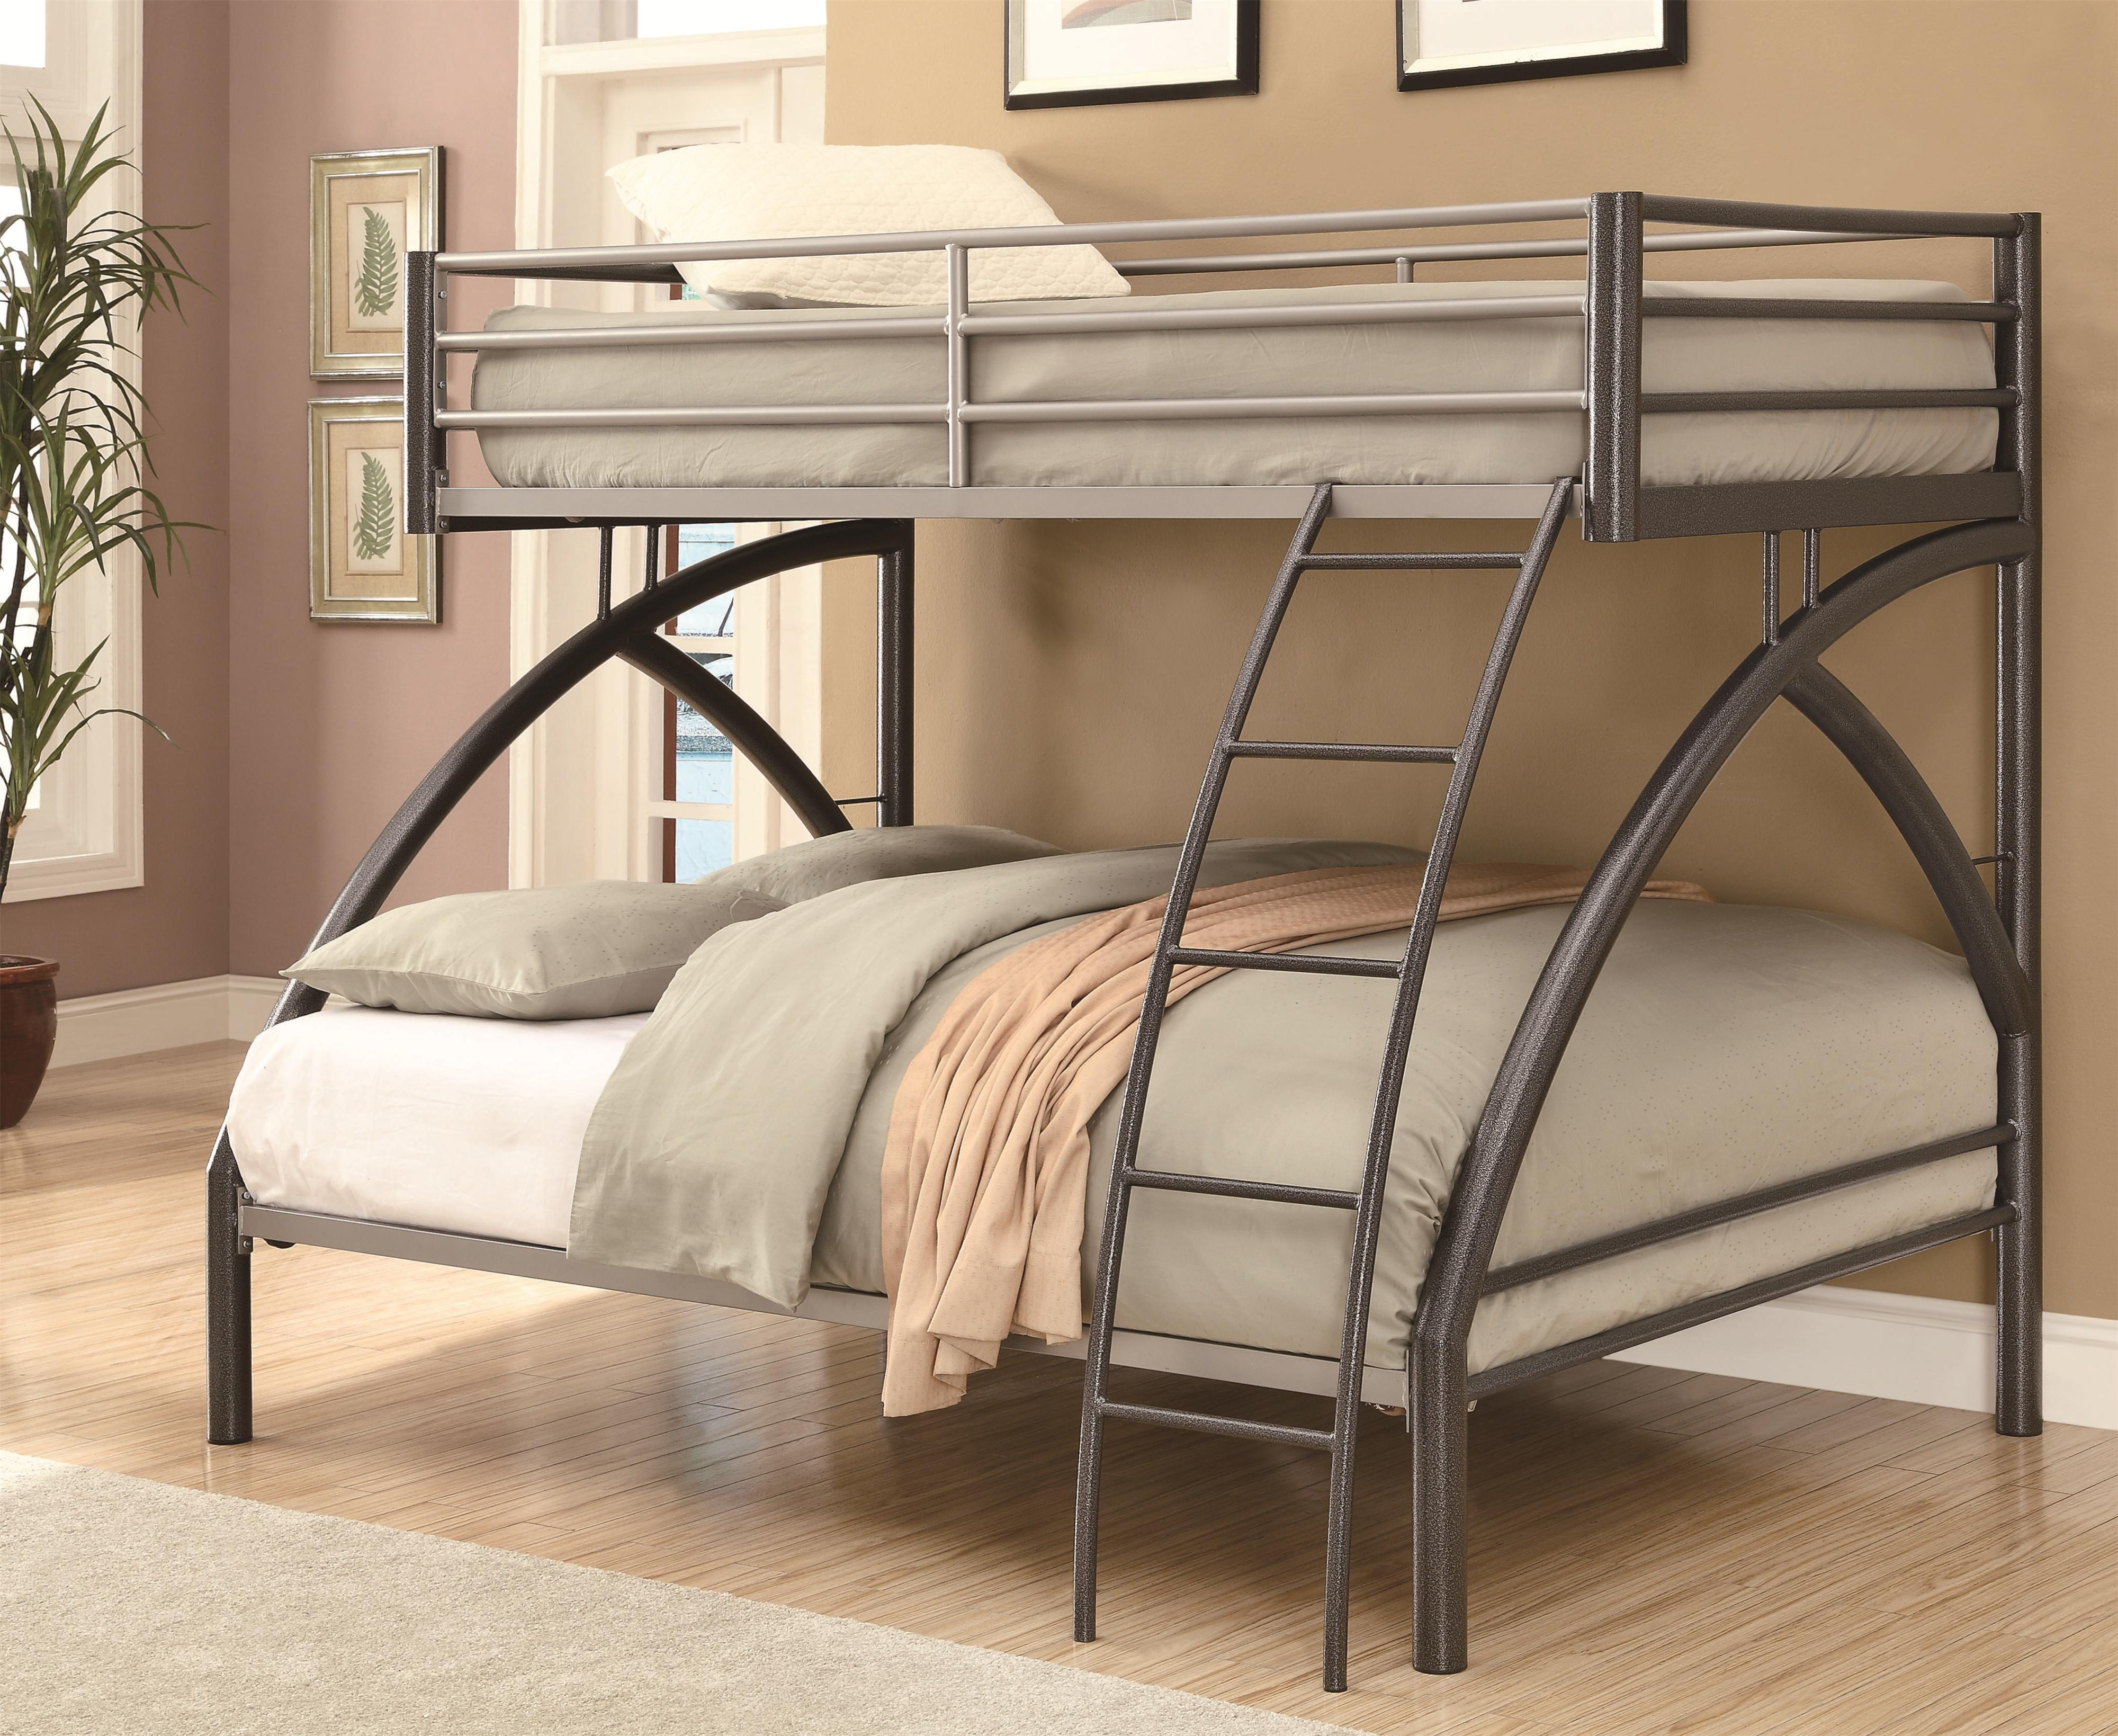 Coaster Bunks Twin/Full Bunk Bed - Item Number: 460079